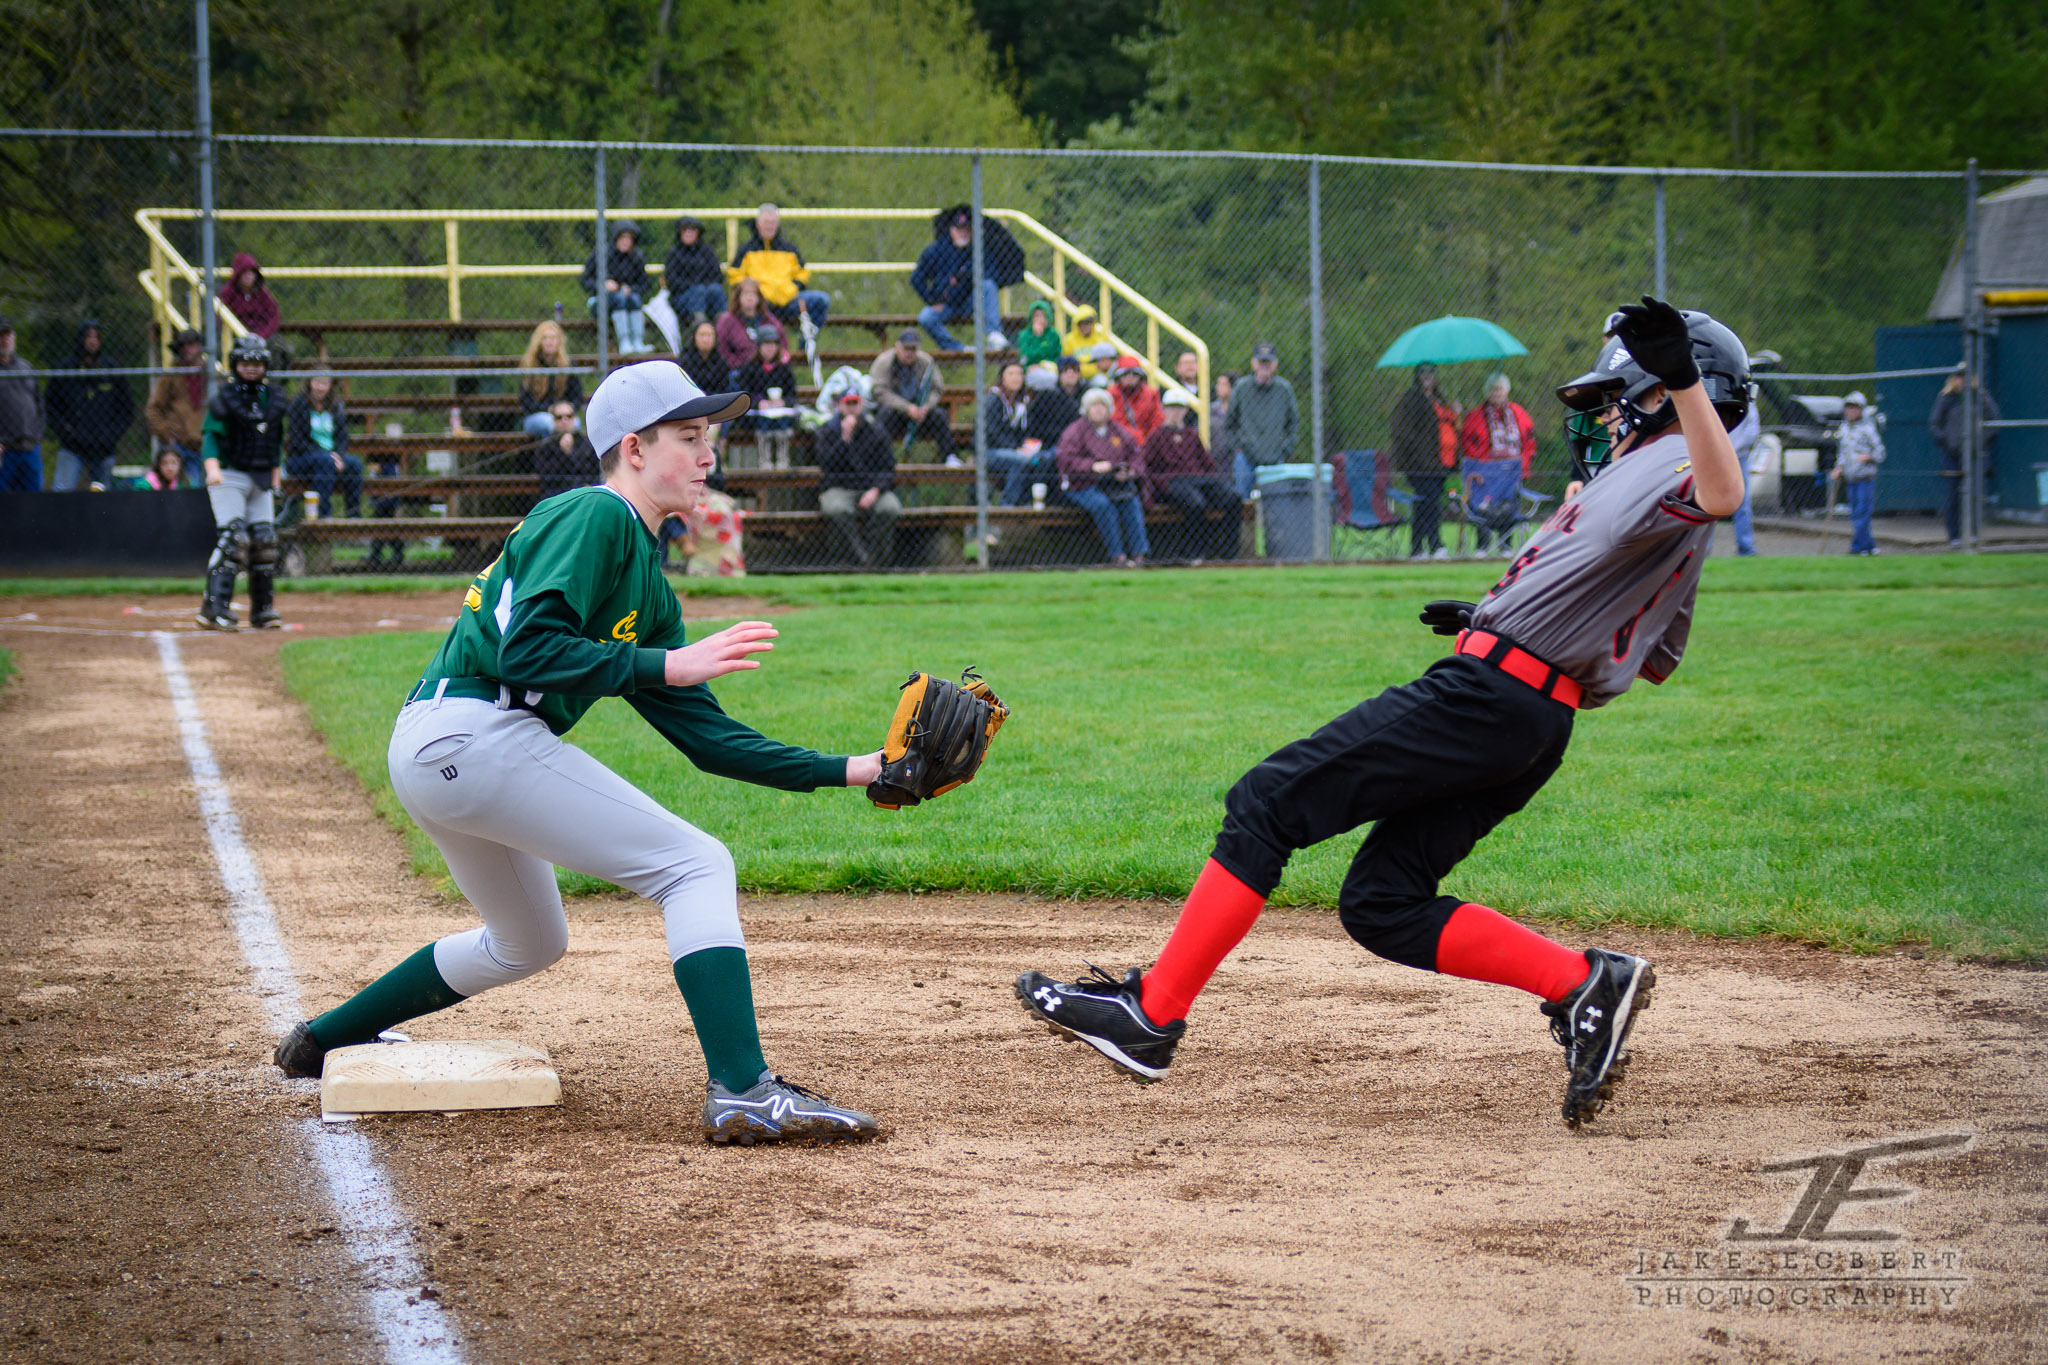 2014-04-05 -- Opening day for the CLL Majors Green Sox was a tough match-up with the Centennial Eagles.